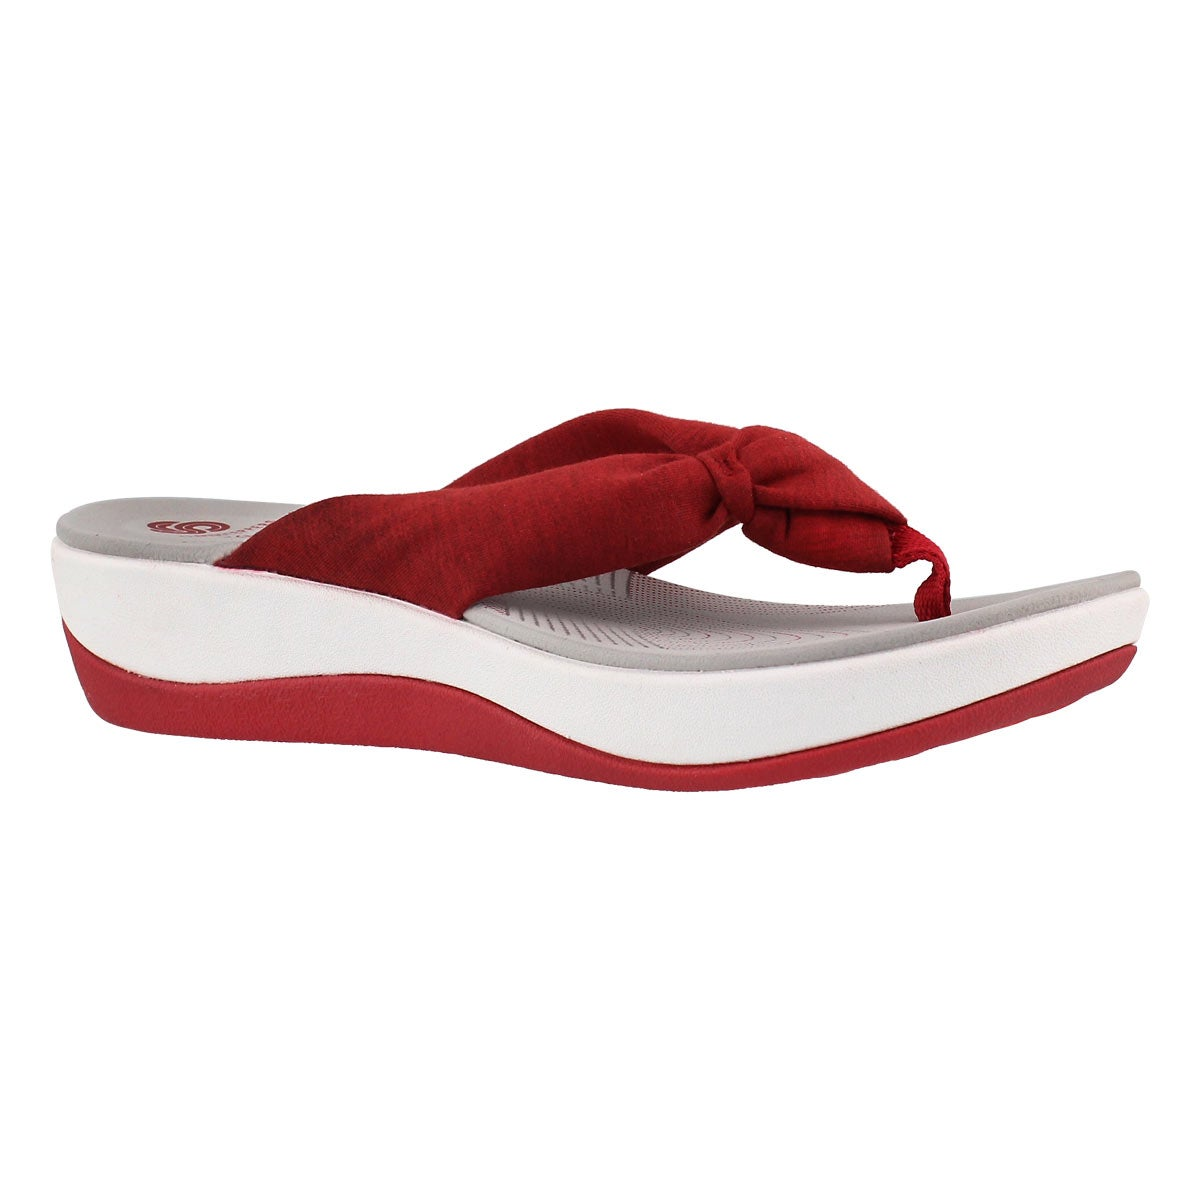 Women's ARLA GILISON red thong wedge sandal